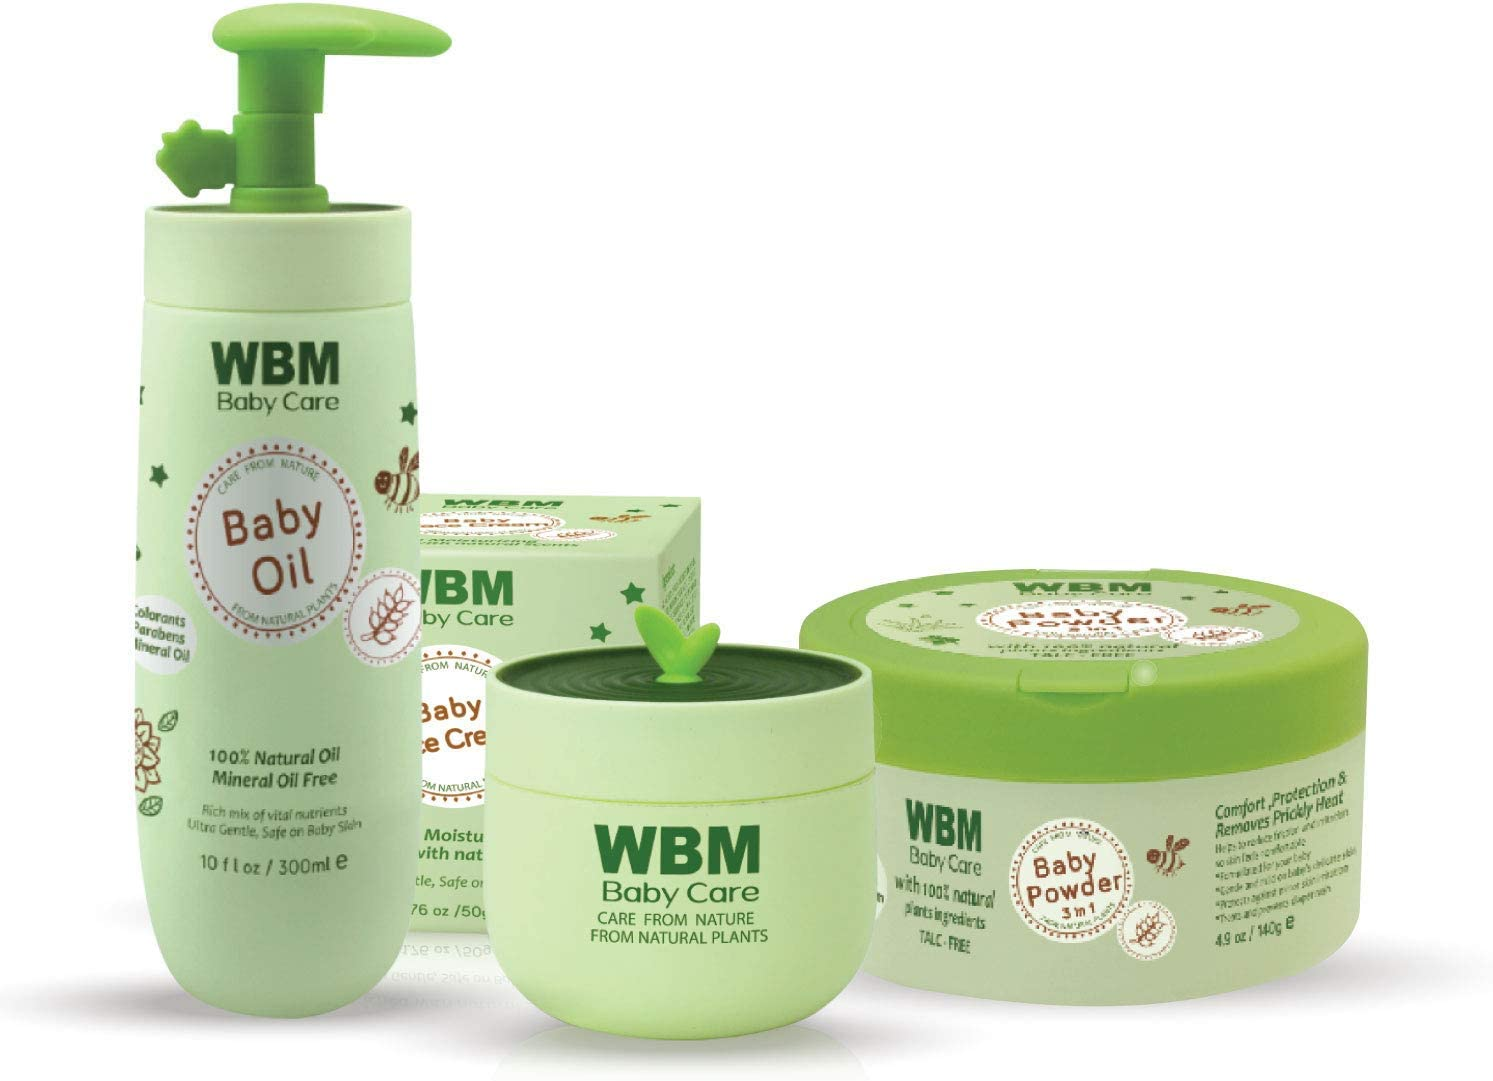 WBM Care Baby Care Gift Set With Baby Oil,Baby Powder And Face Cream - Essentials Skin Care Products ,Baby & Mommy Gift Set, 3 Items